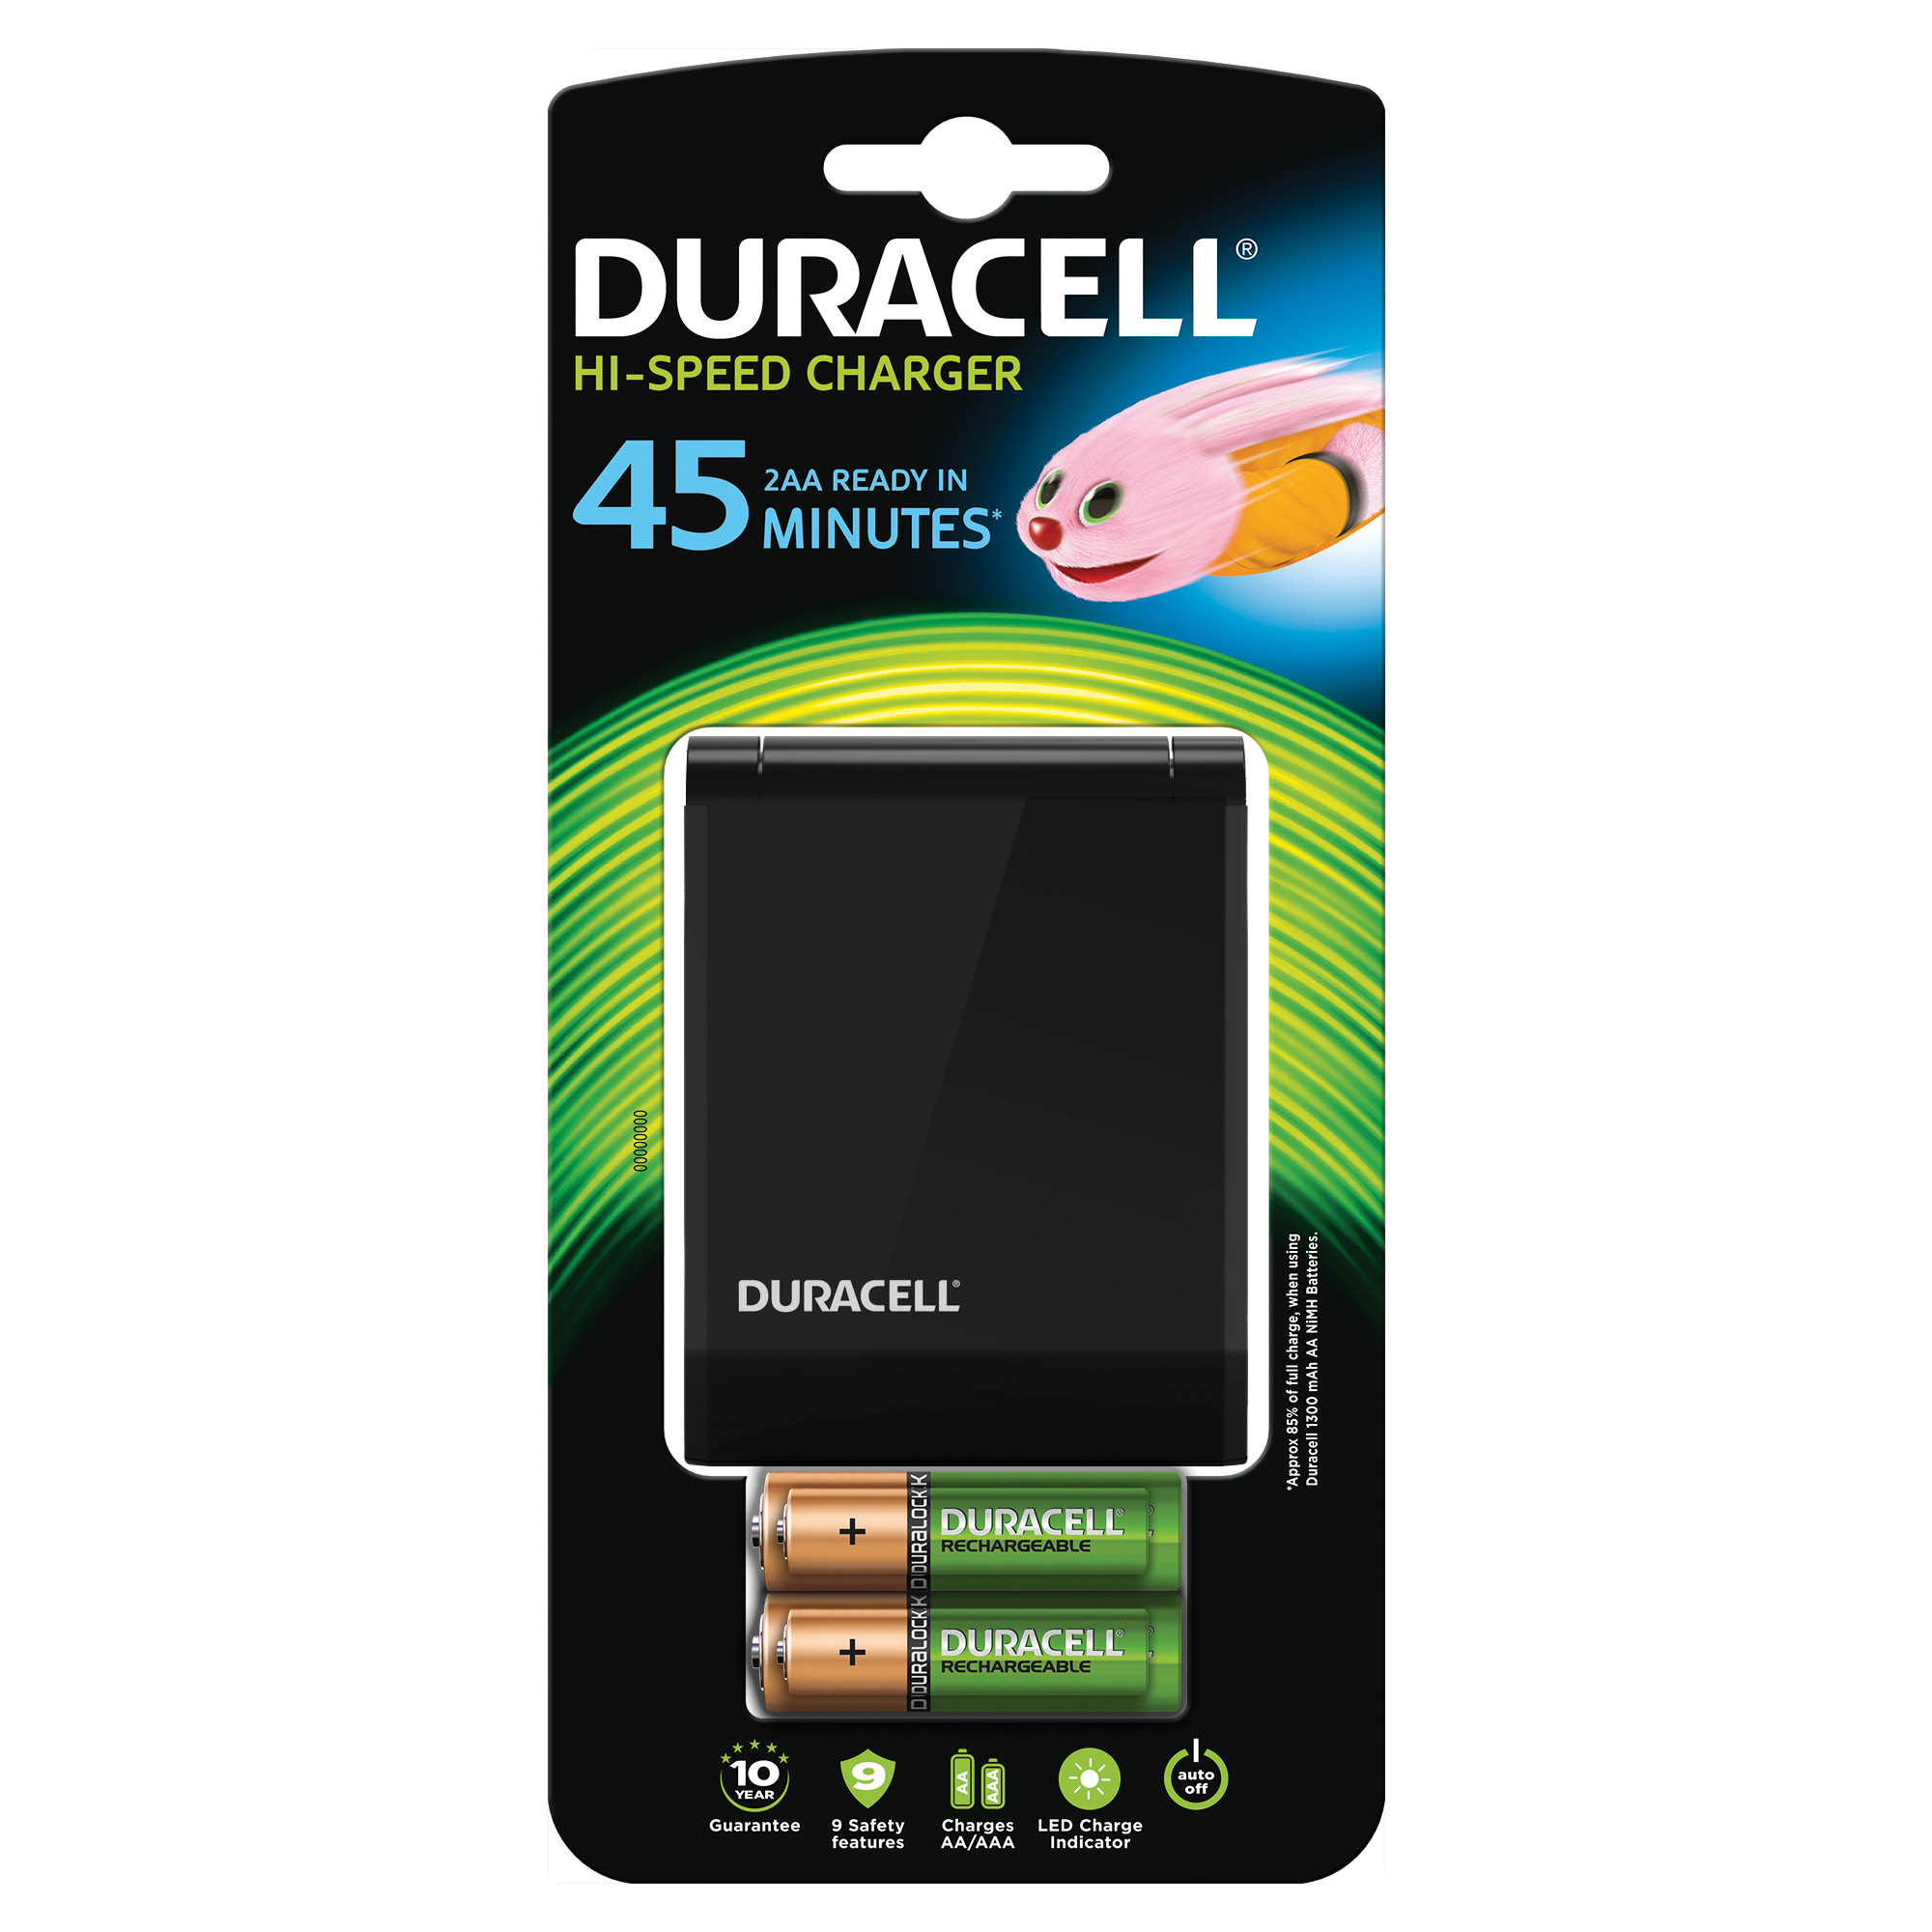 Image for Duracell 45 Minute Charger CEF27 81362494